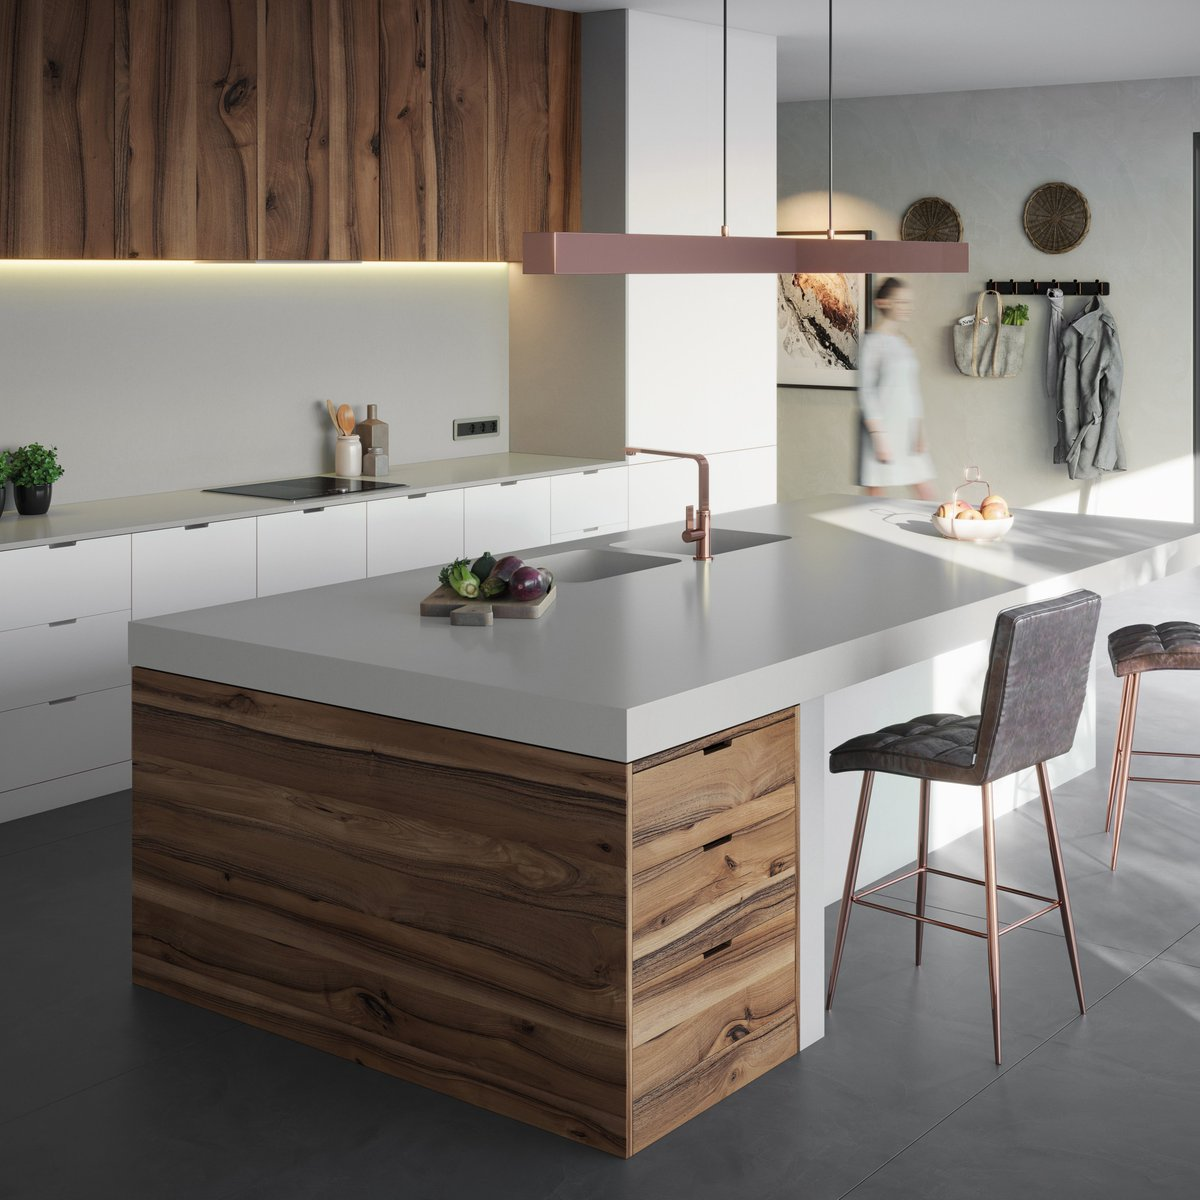 Cincel Grey is a neutral, adaptable grey that balances easily between warm and cool tones. Pair it with polished metals and rustic finishes to create the most stunning minimalist spaces: bit.ly/3gQlNrv #Silestone #HybriQTechonology